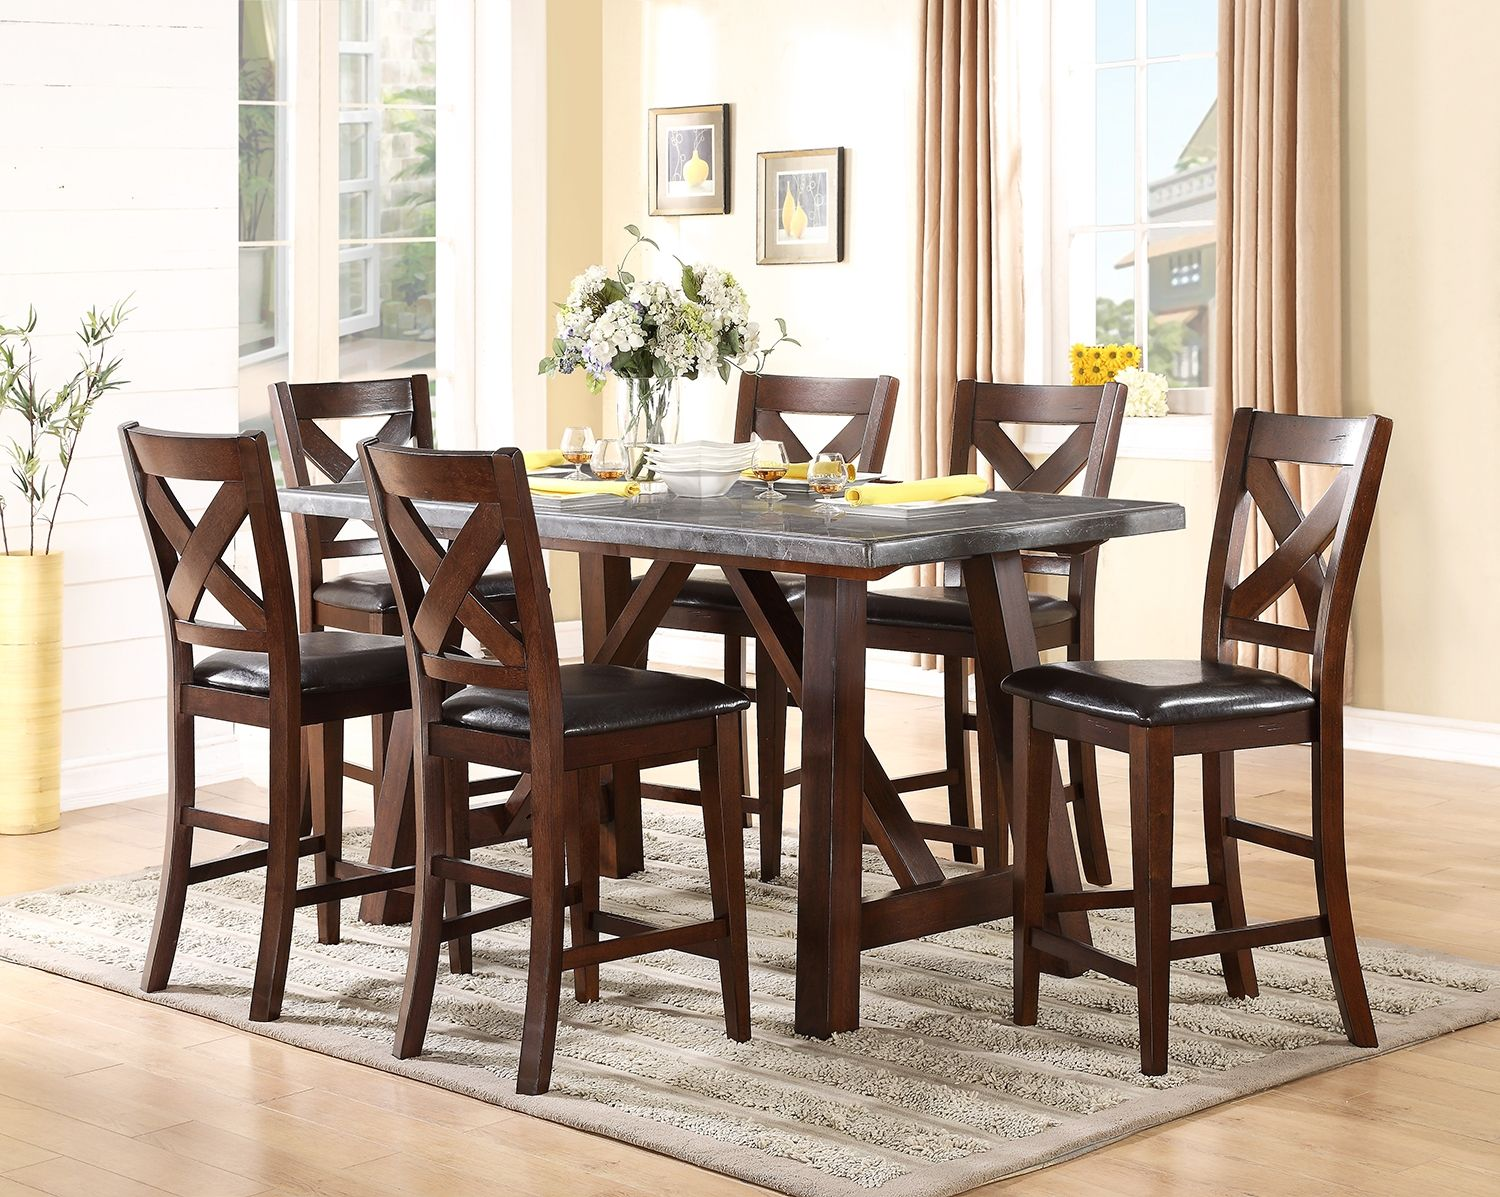 Adara Counter Height Dining Chair  Dining Chairs Accent Pieces Custom Dining Room Accent Pieces Inspiration